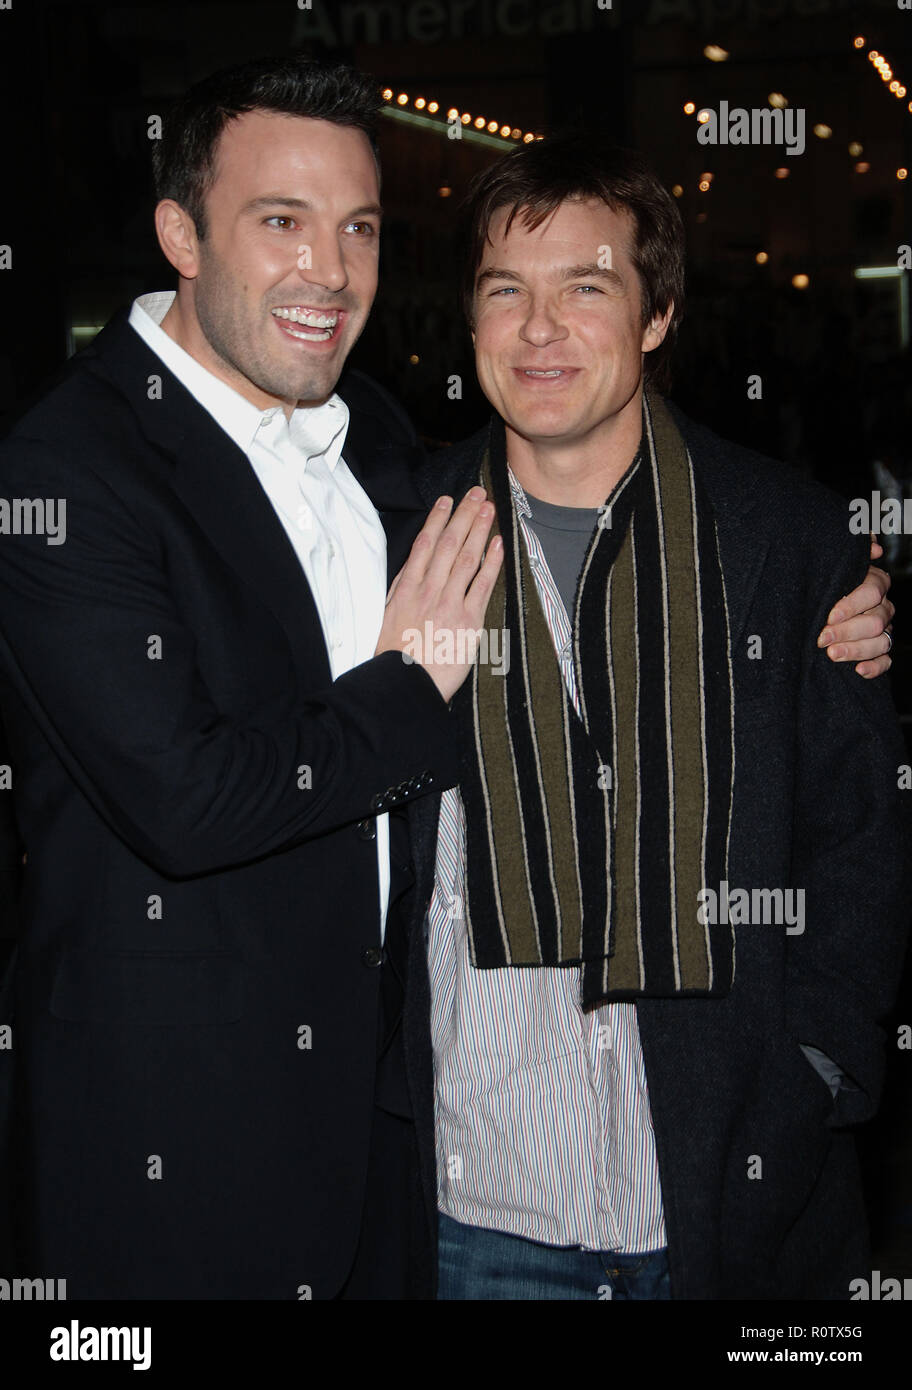 Ben Affleck and Jason Bateman arriving at the Smokin' Aces at the Chinese Theatre In Los Angeles. January 18, 2007.  smile 3/4          -            A - Stock Image